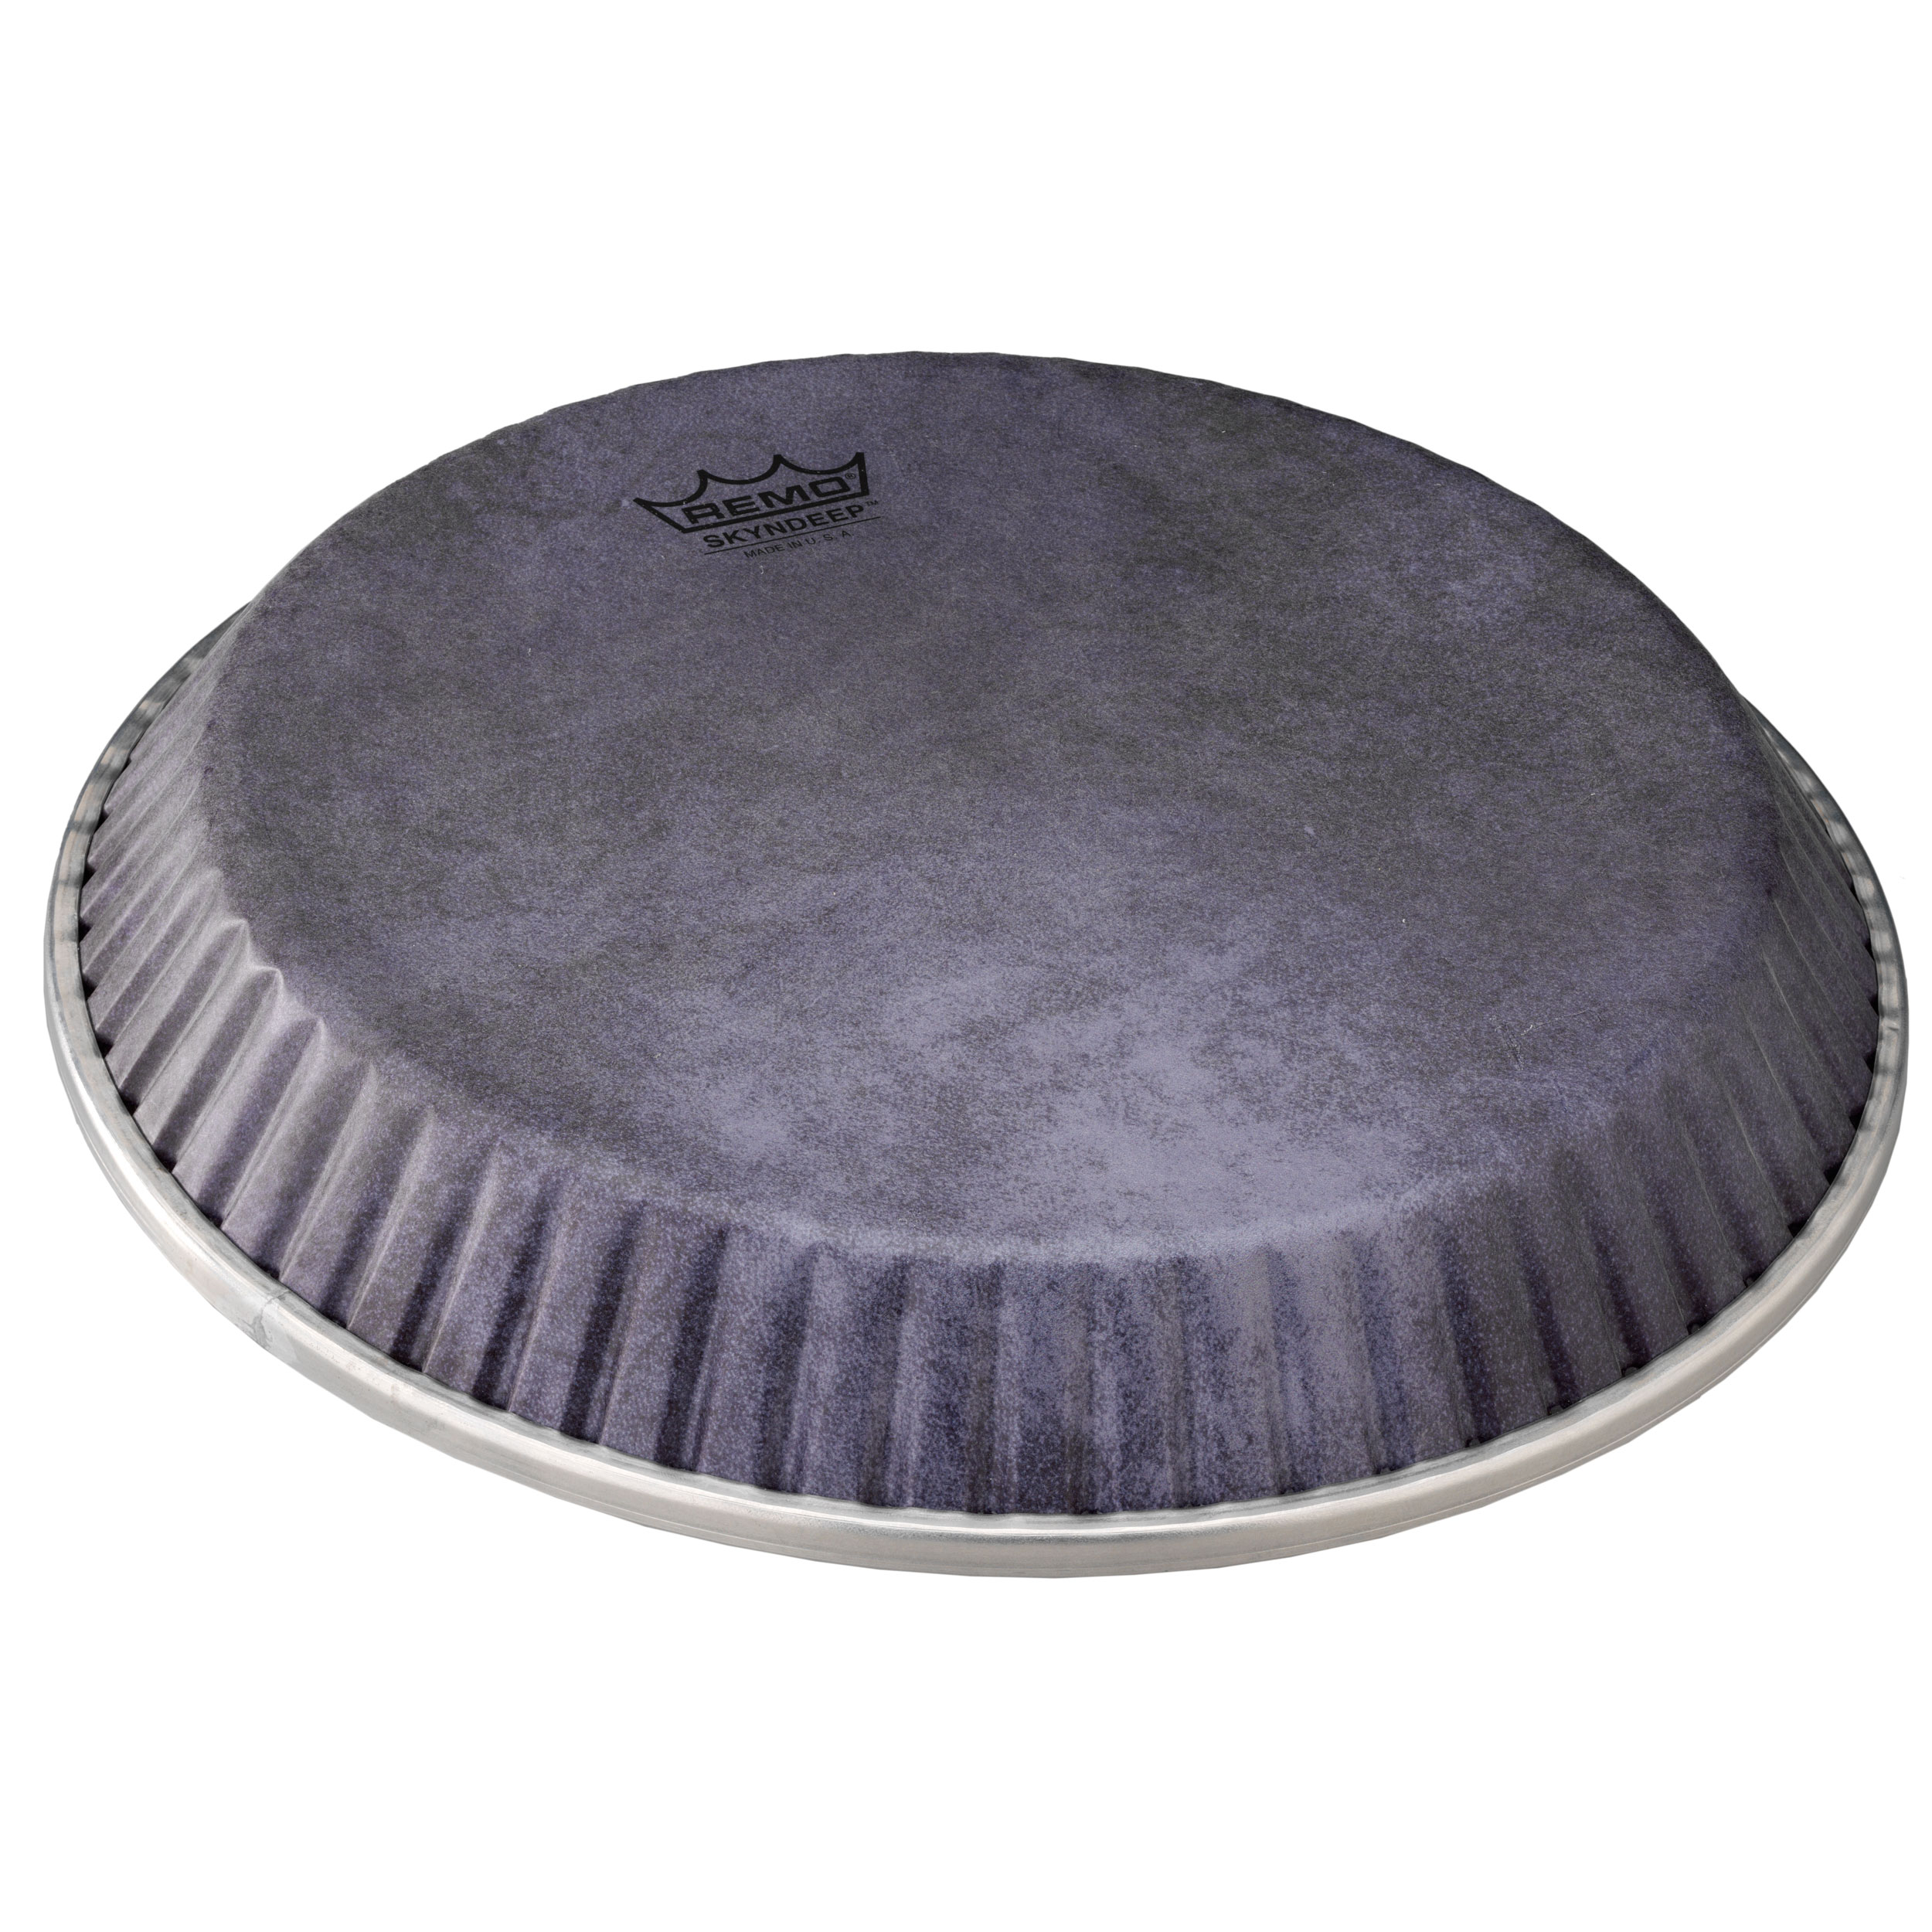 """Remo 12.25"""" Symmetry Skyndeep Conga Drum Head (D1 Collar) with Black Calfskin Graphic"""